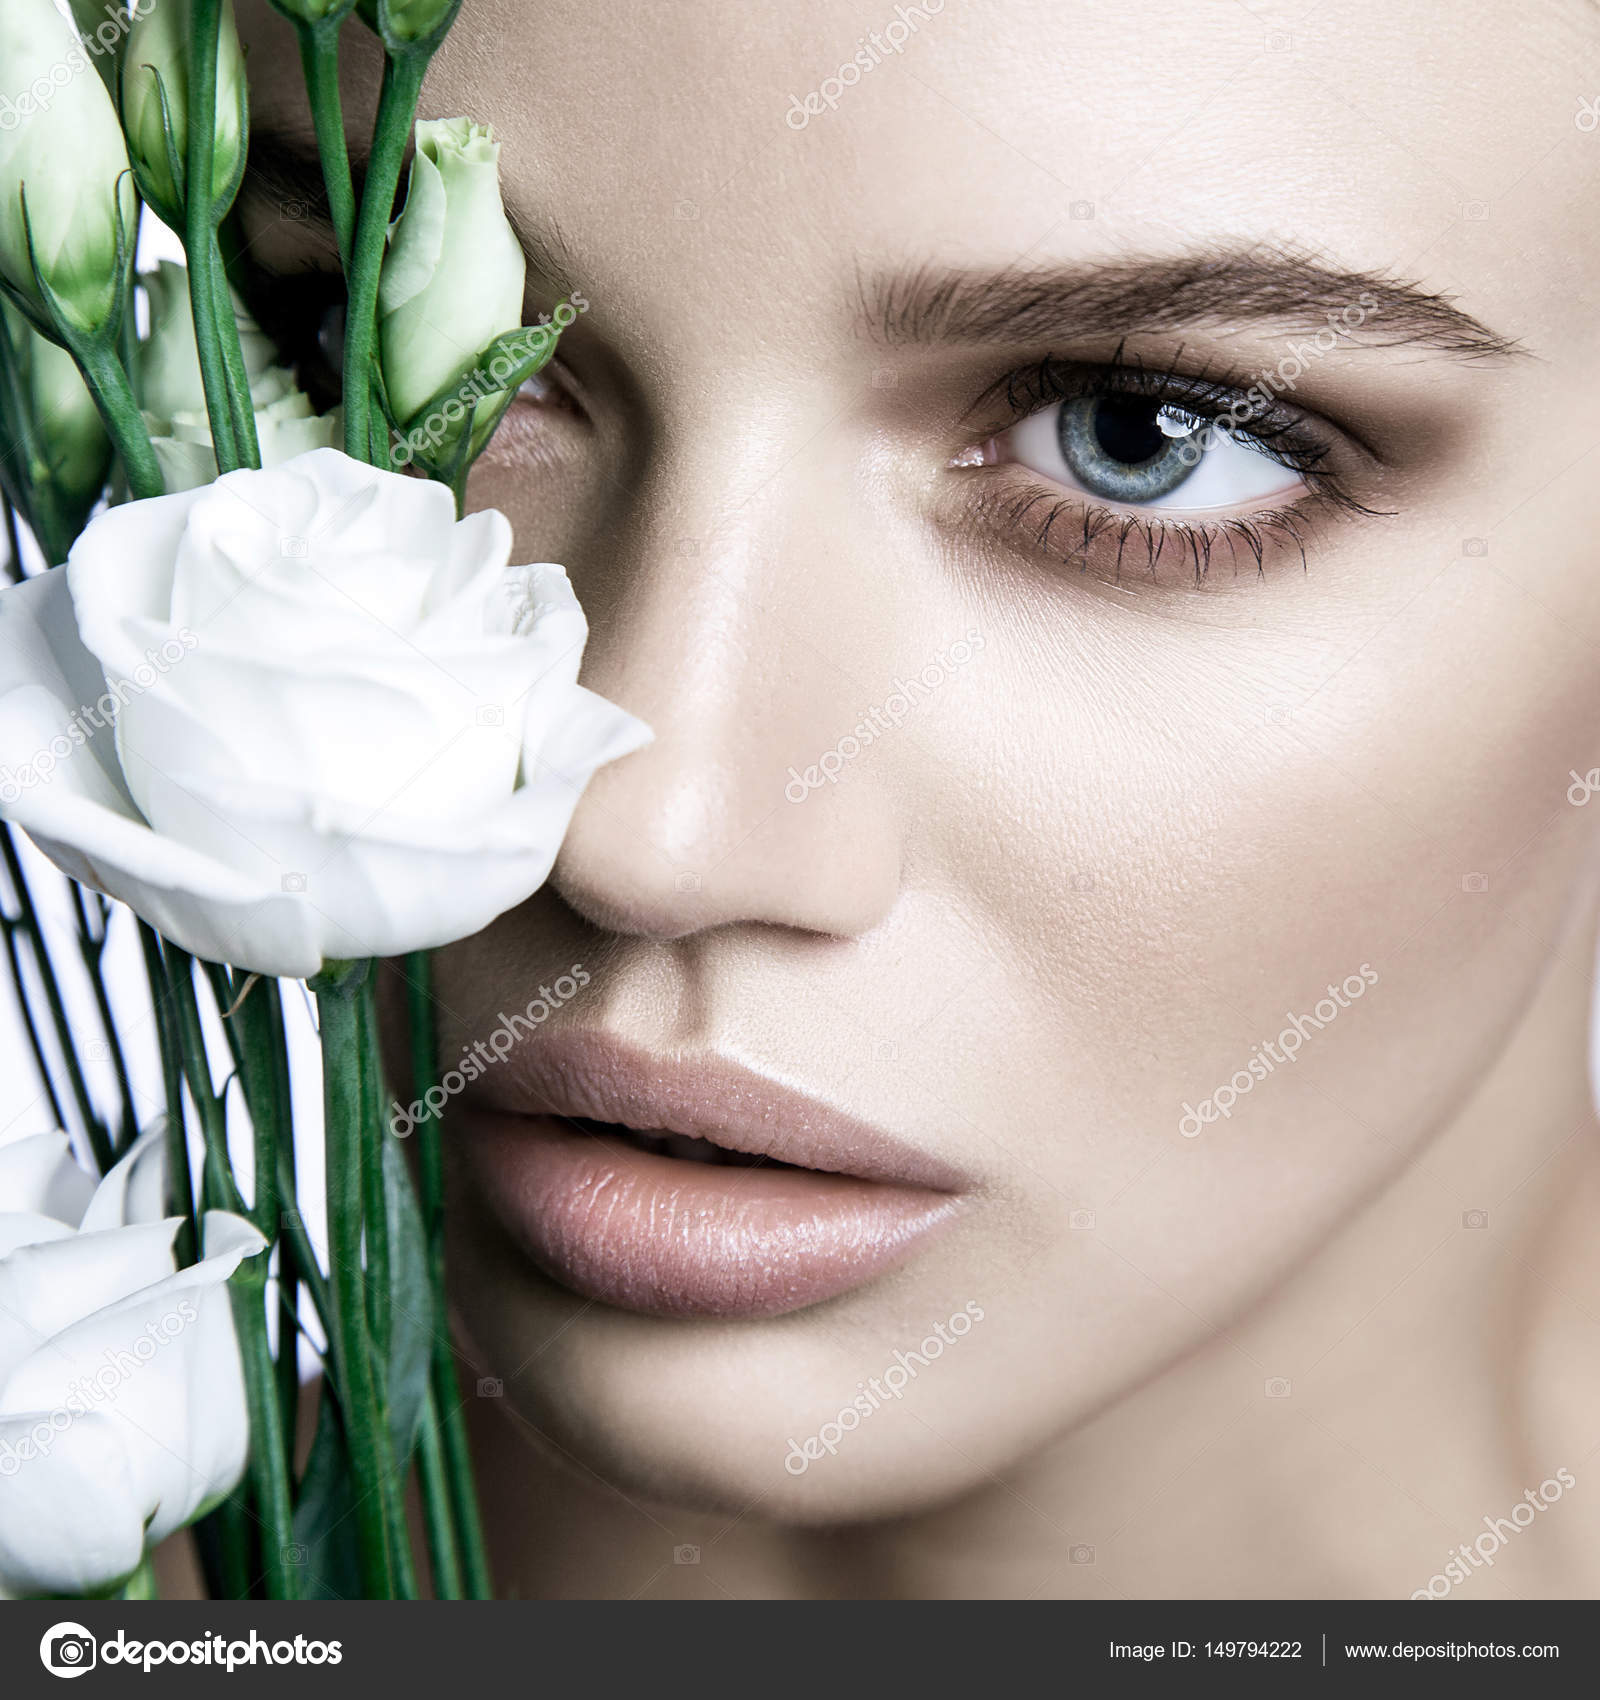 Calm beauty fashion model woman face portrait with white rose calm beauty fashion model woman face portrait with white rose flower beautiful blonde woman with blue eyes and nude makeup studio shot izmirmasajfo